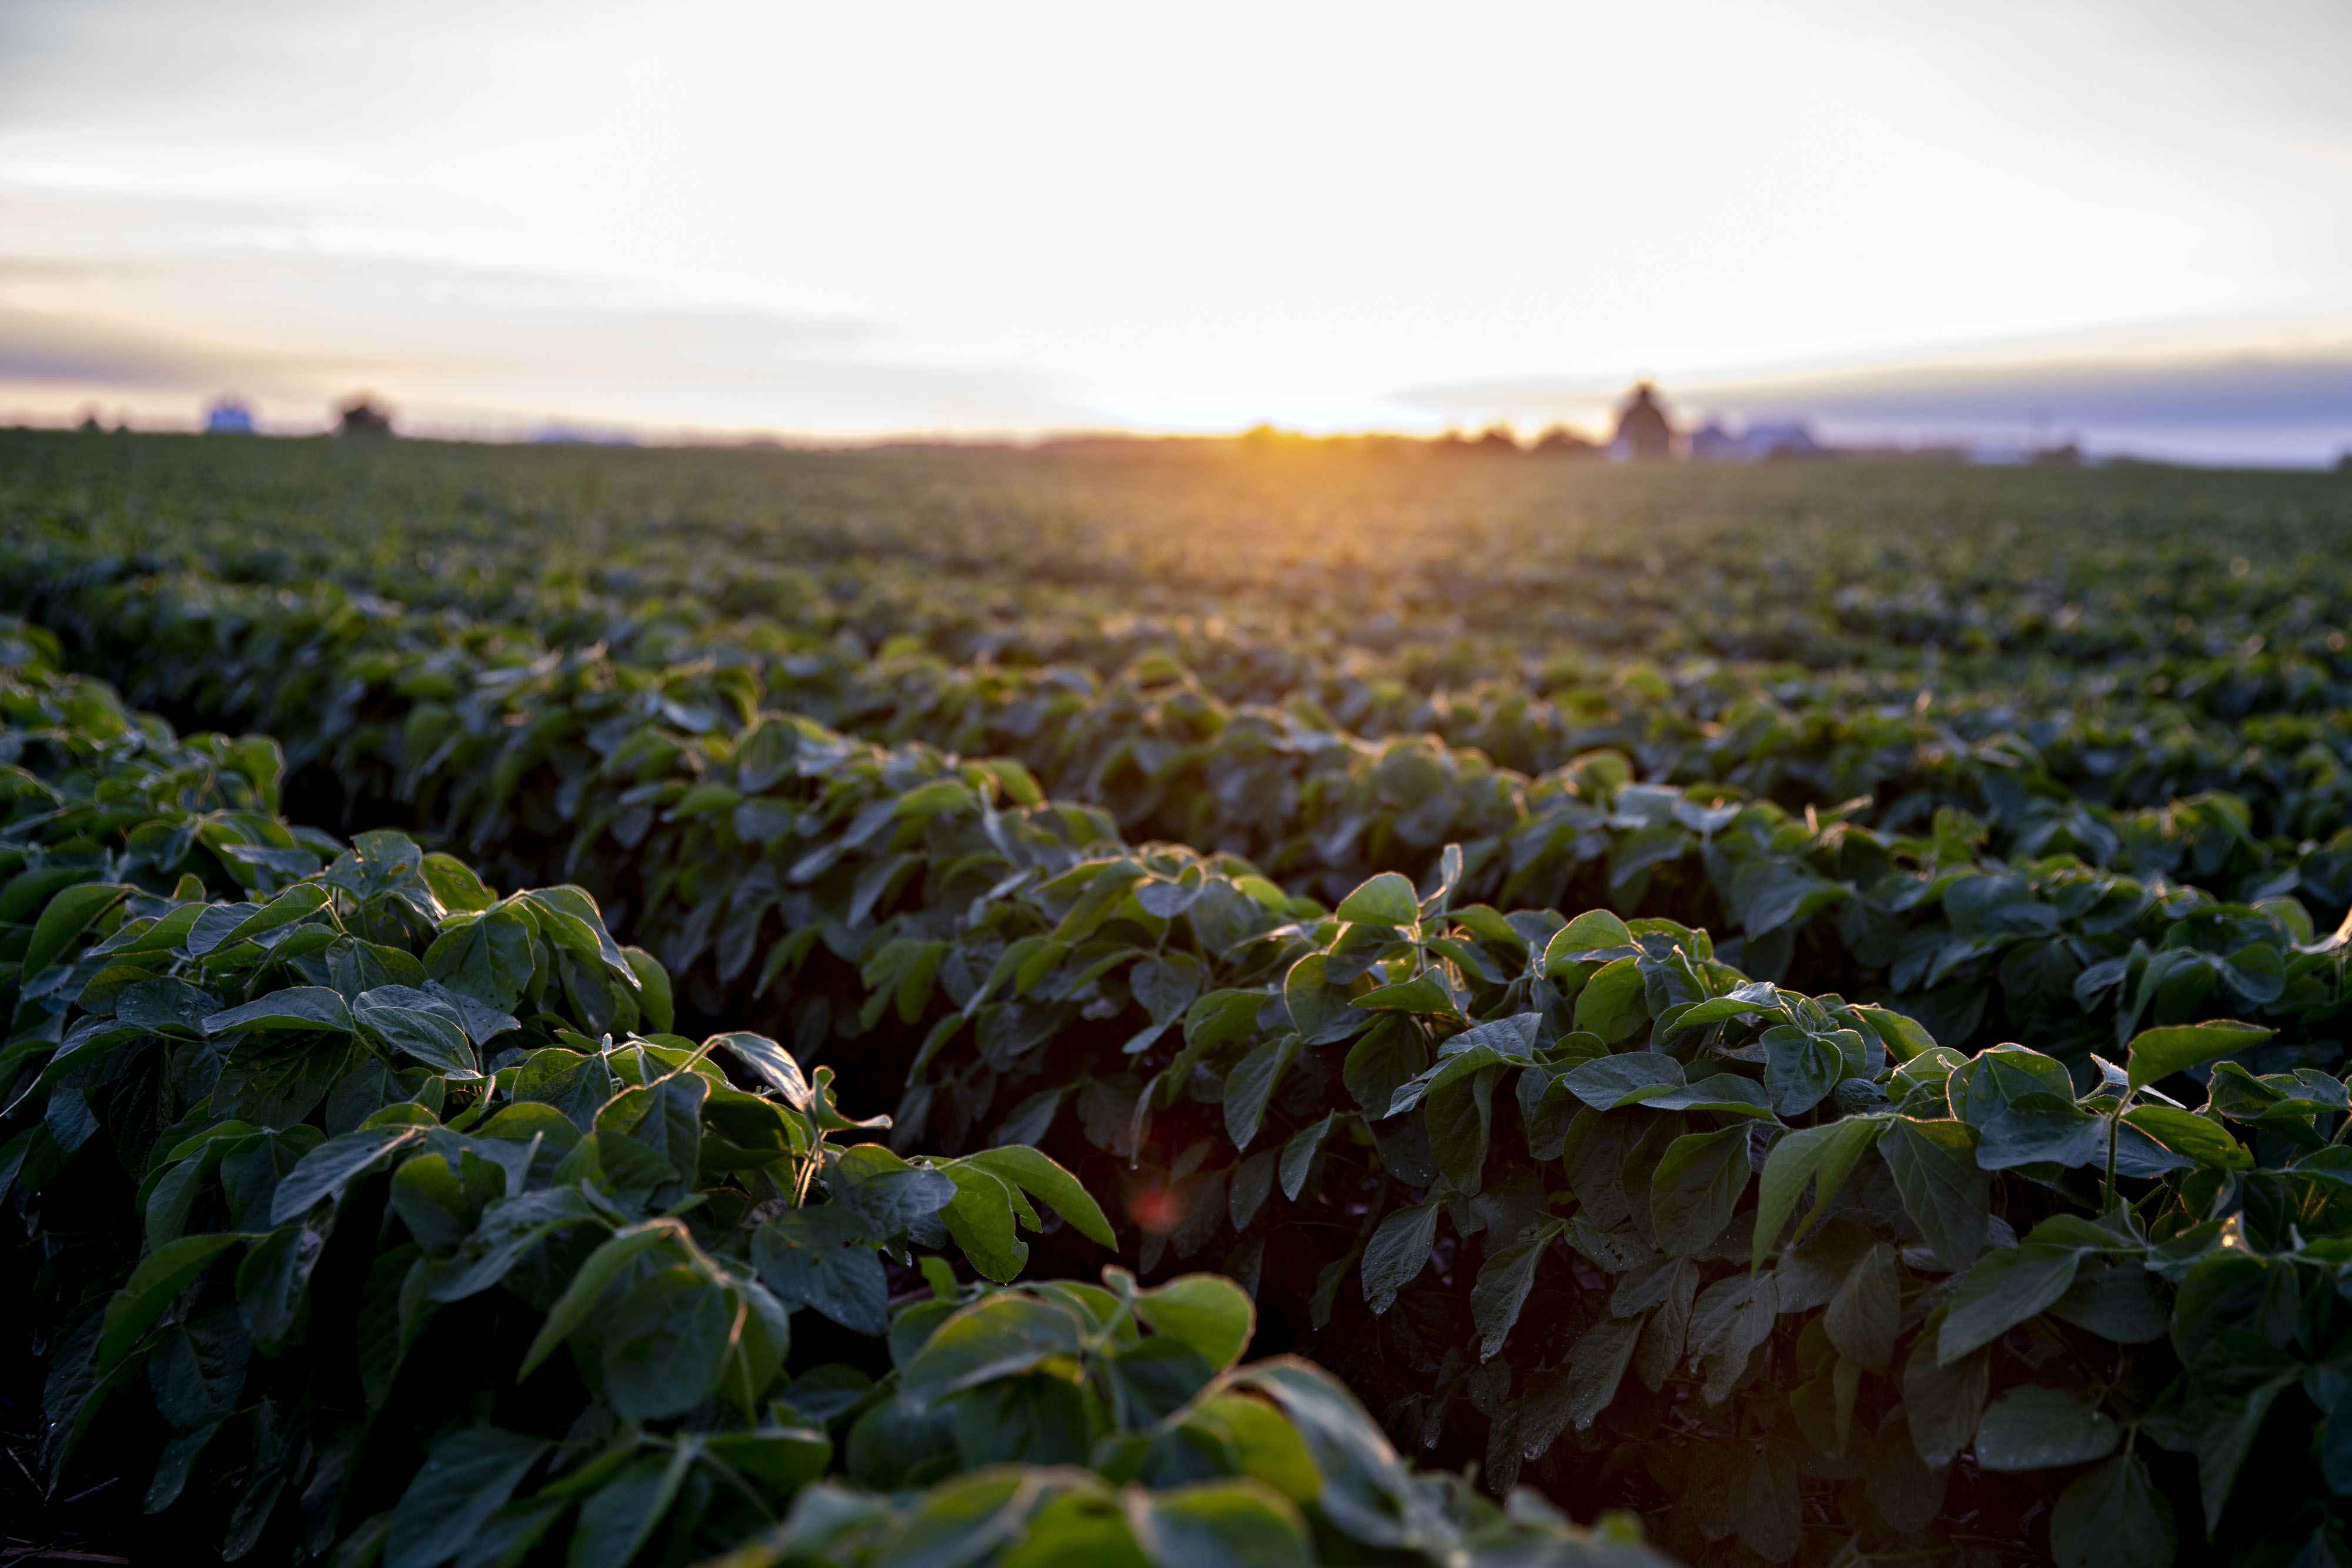 U.S. Soy Prices Are Crumbling as Trade War Sparks Brazil Rally